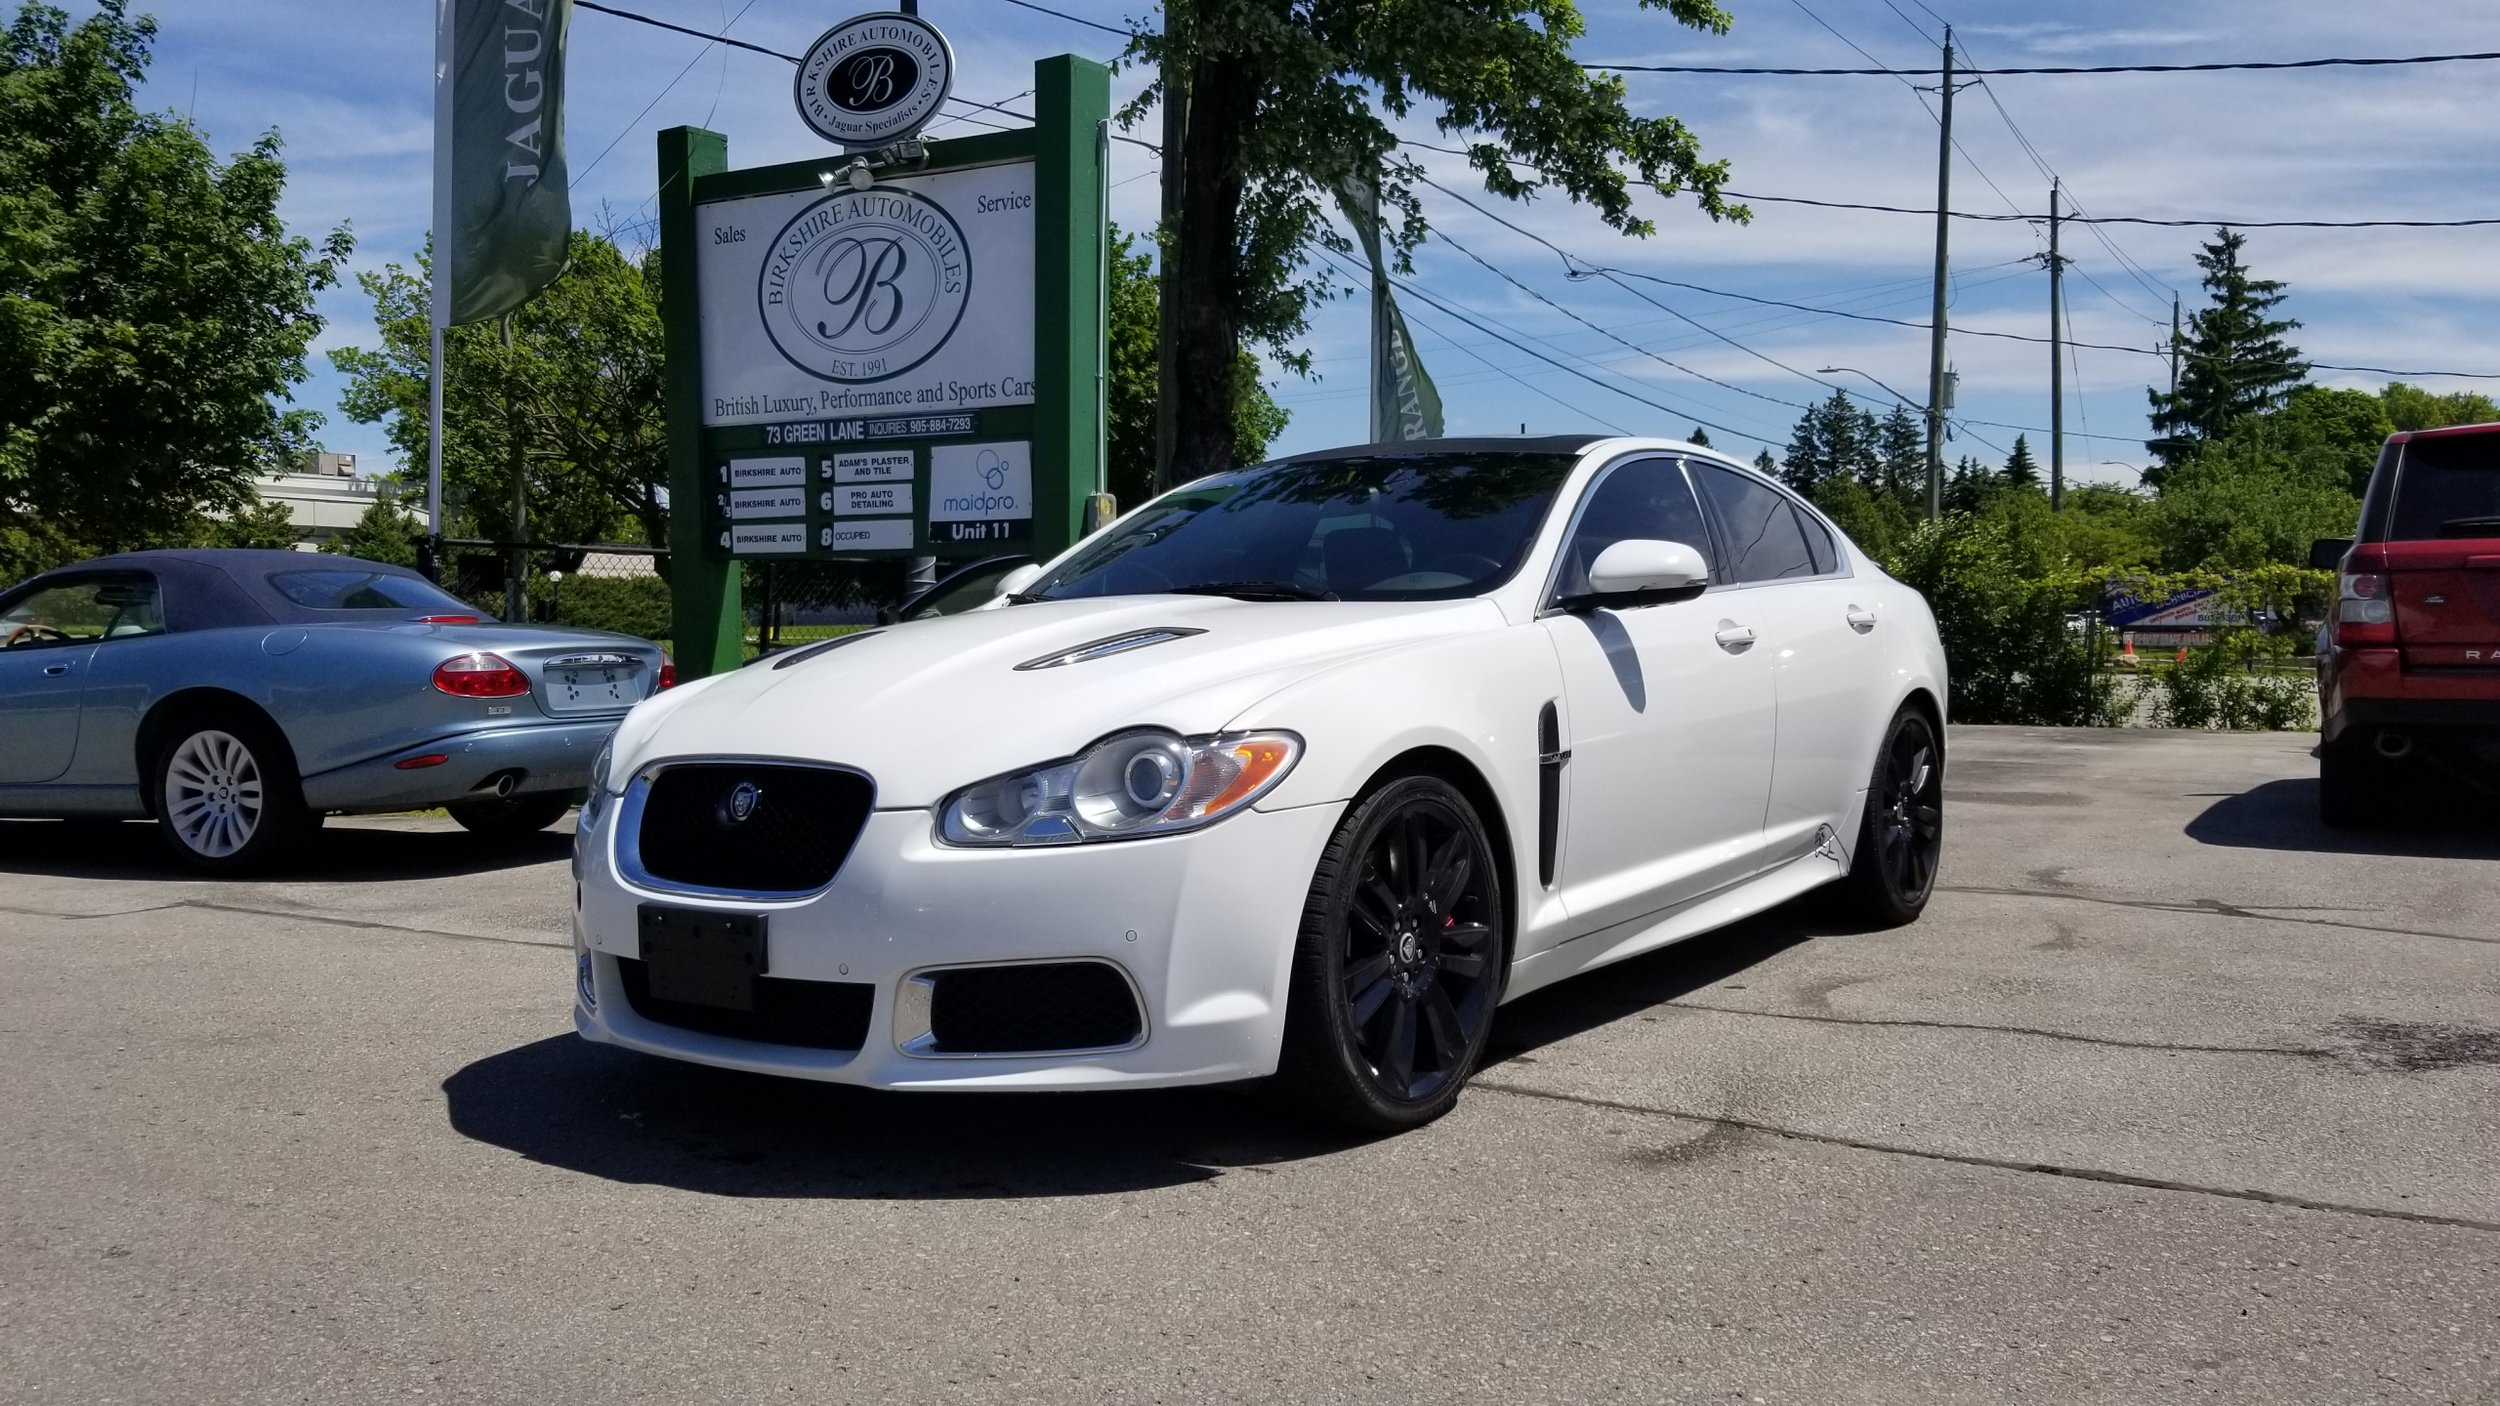 2011 Jaguar XFR - Sleek and stylish. Comes with 20